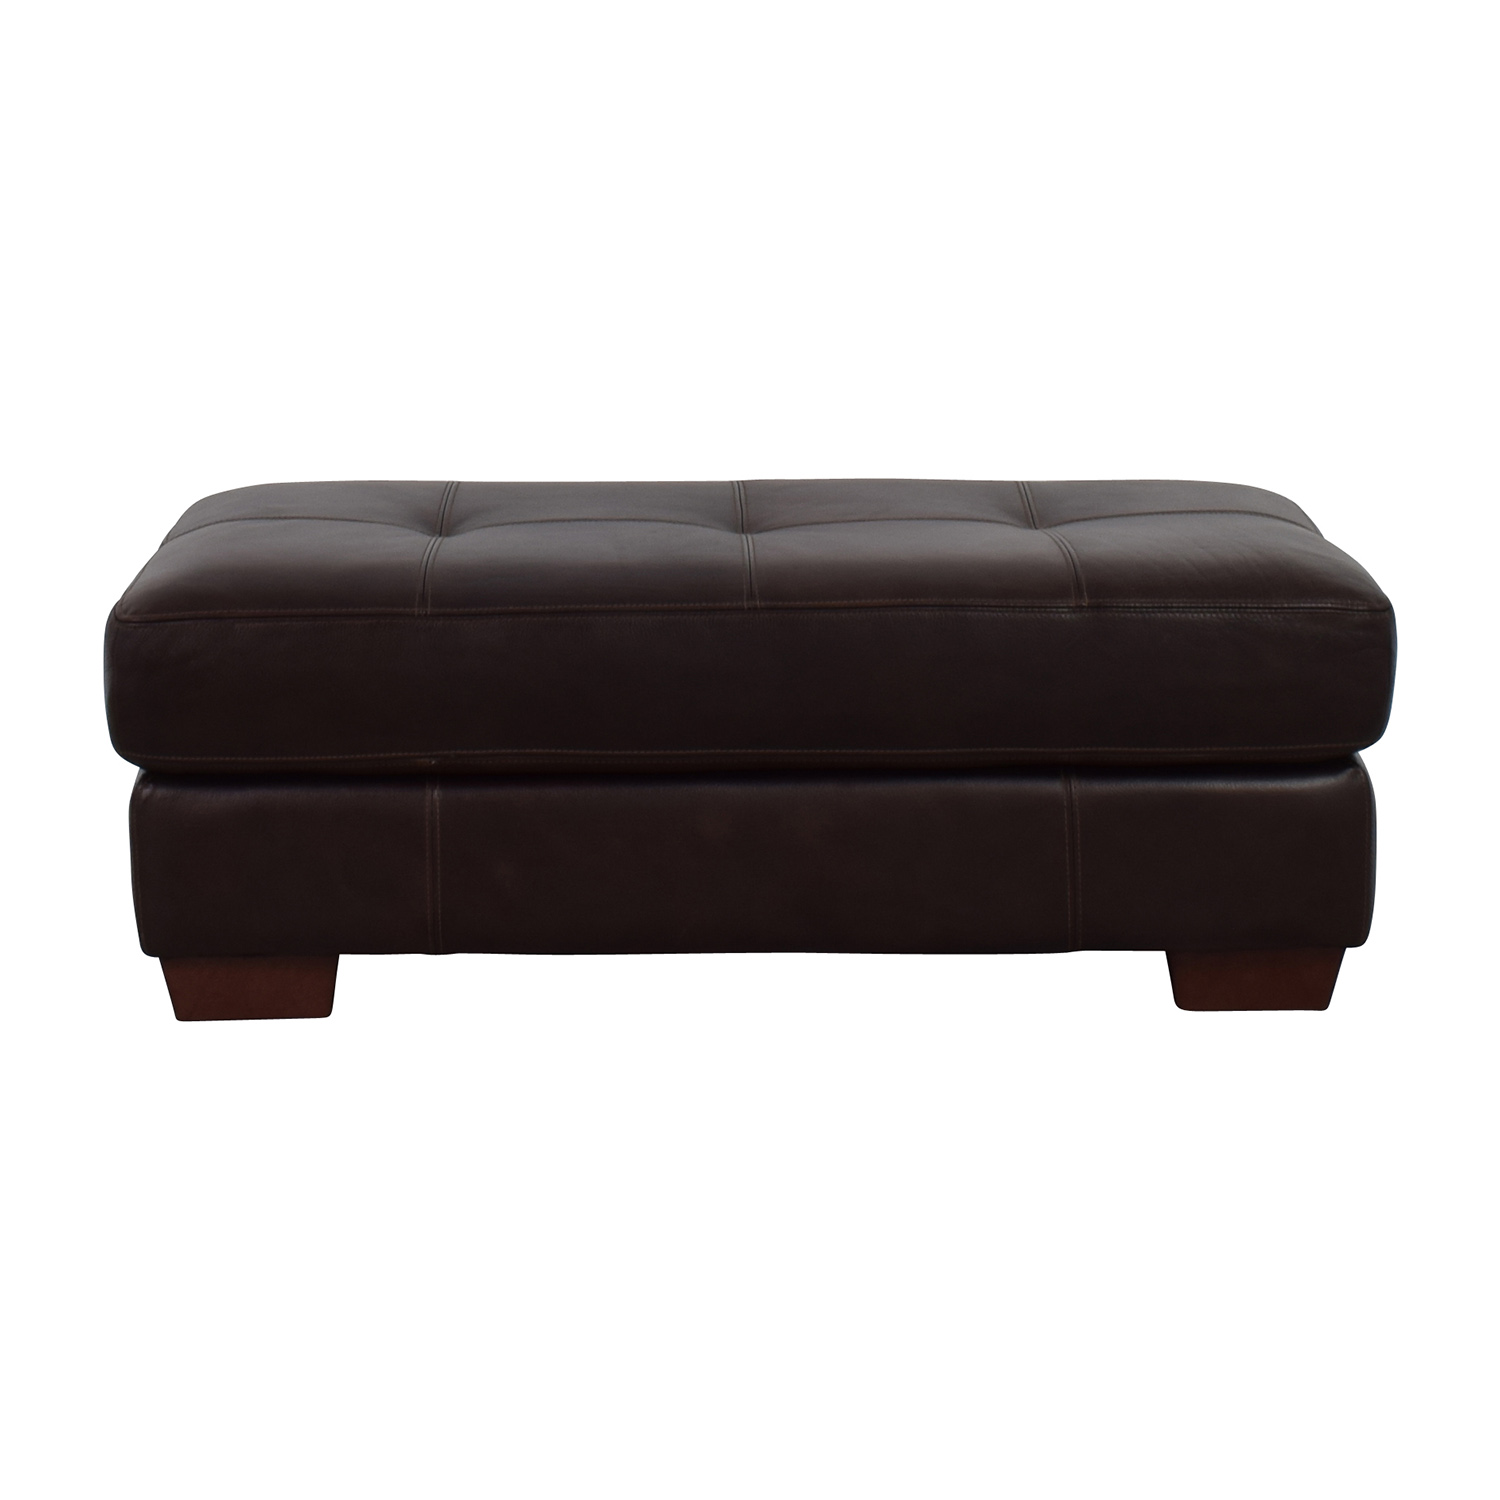 Chateau Dax Chateau Dax Phoenix Cocktail Dark Brown Leather Ottoman coupon